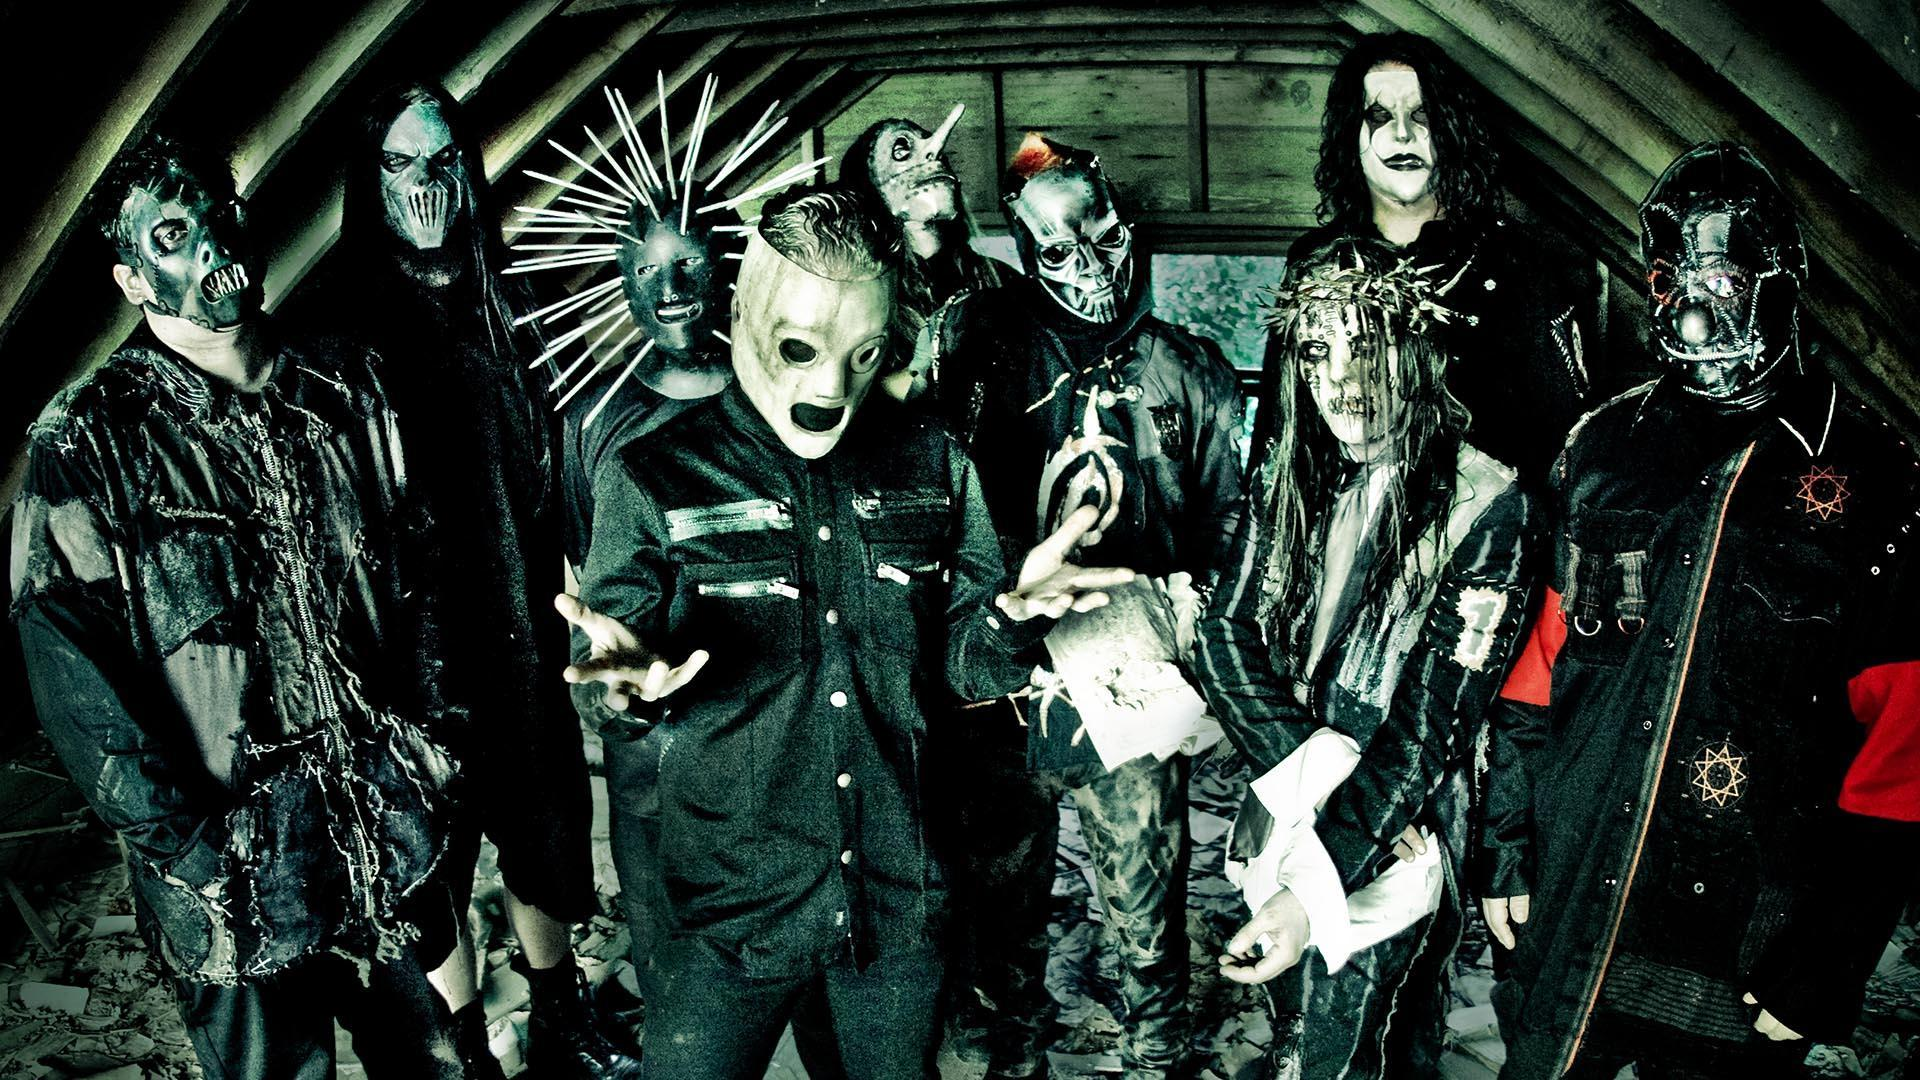 Slipknot Wallpaper 4k Android Adsleaf Com